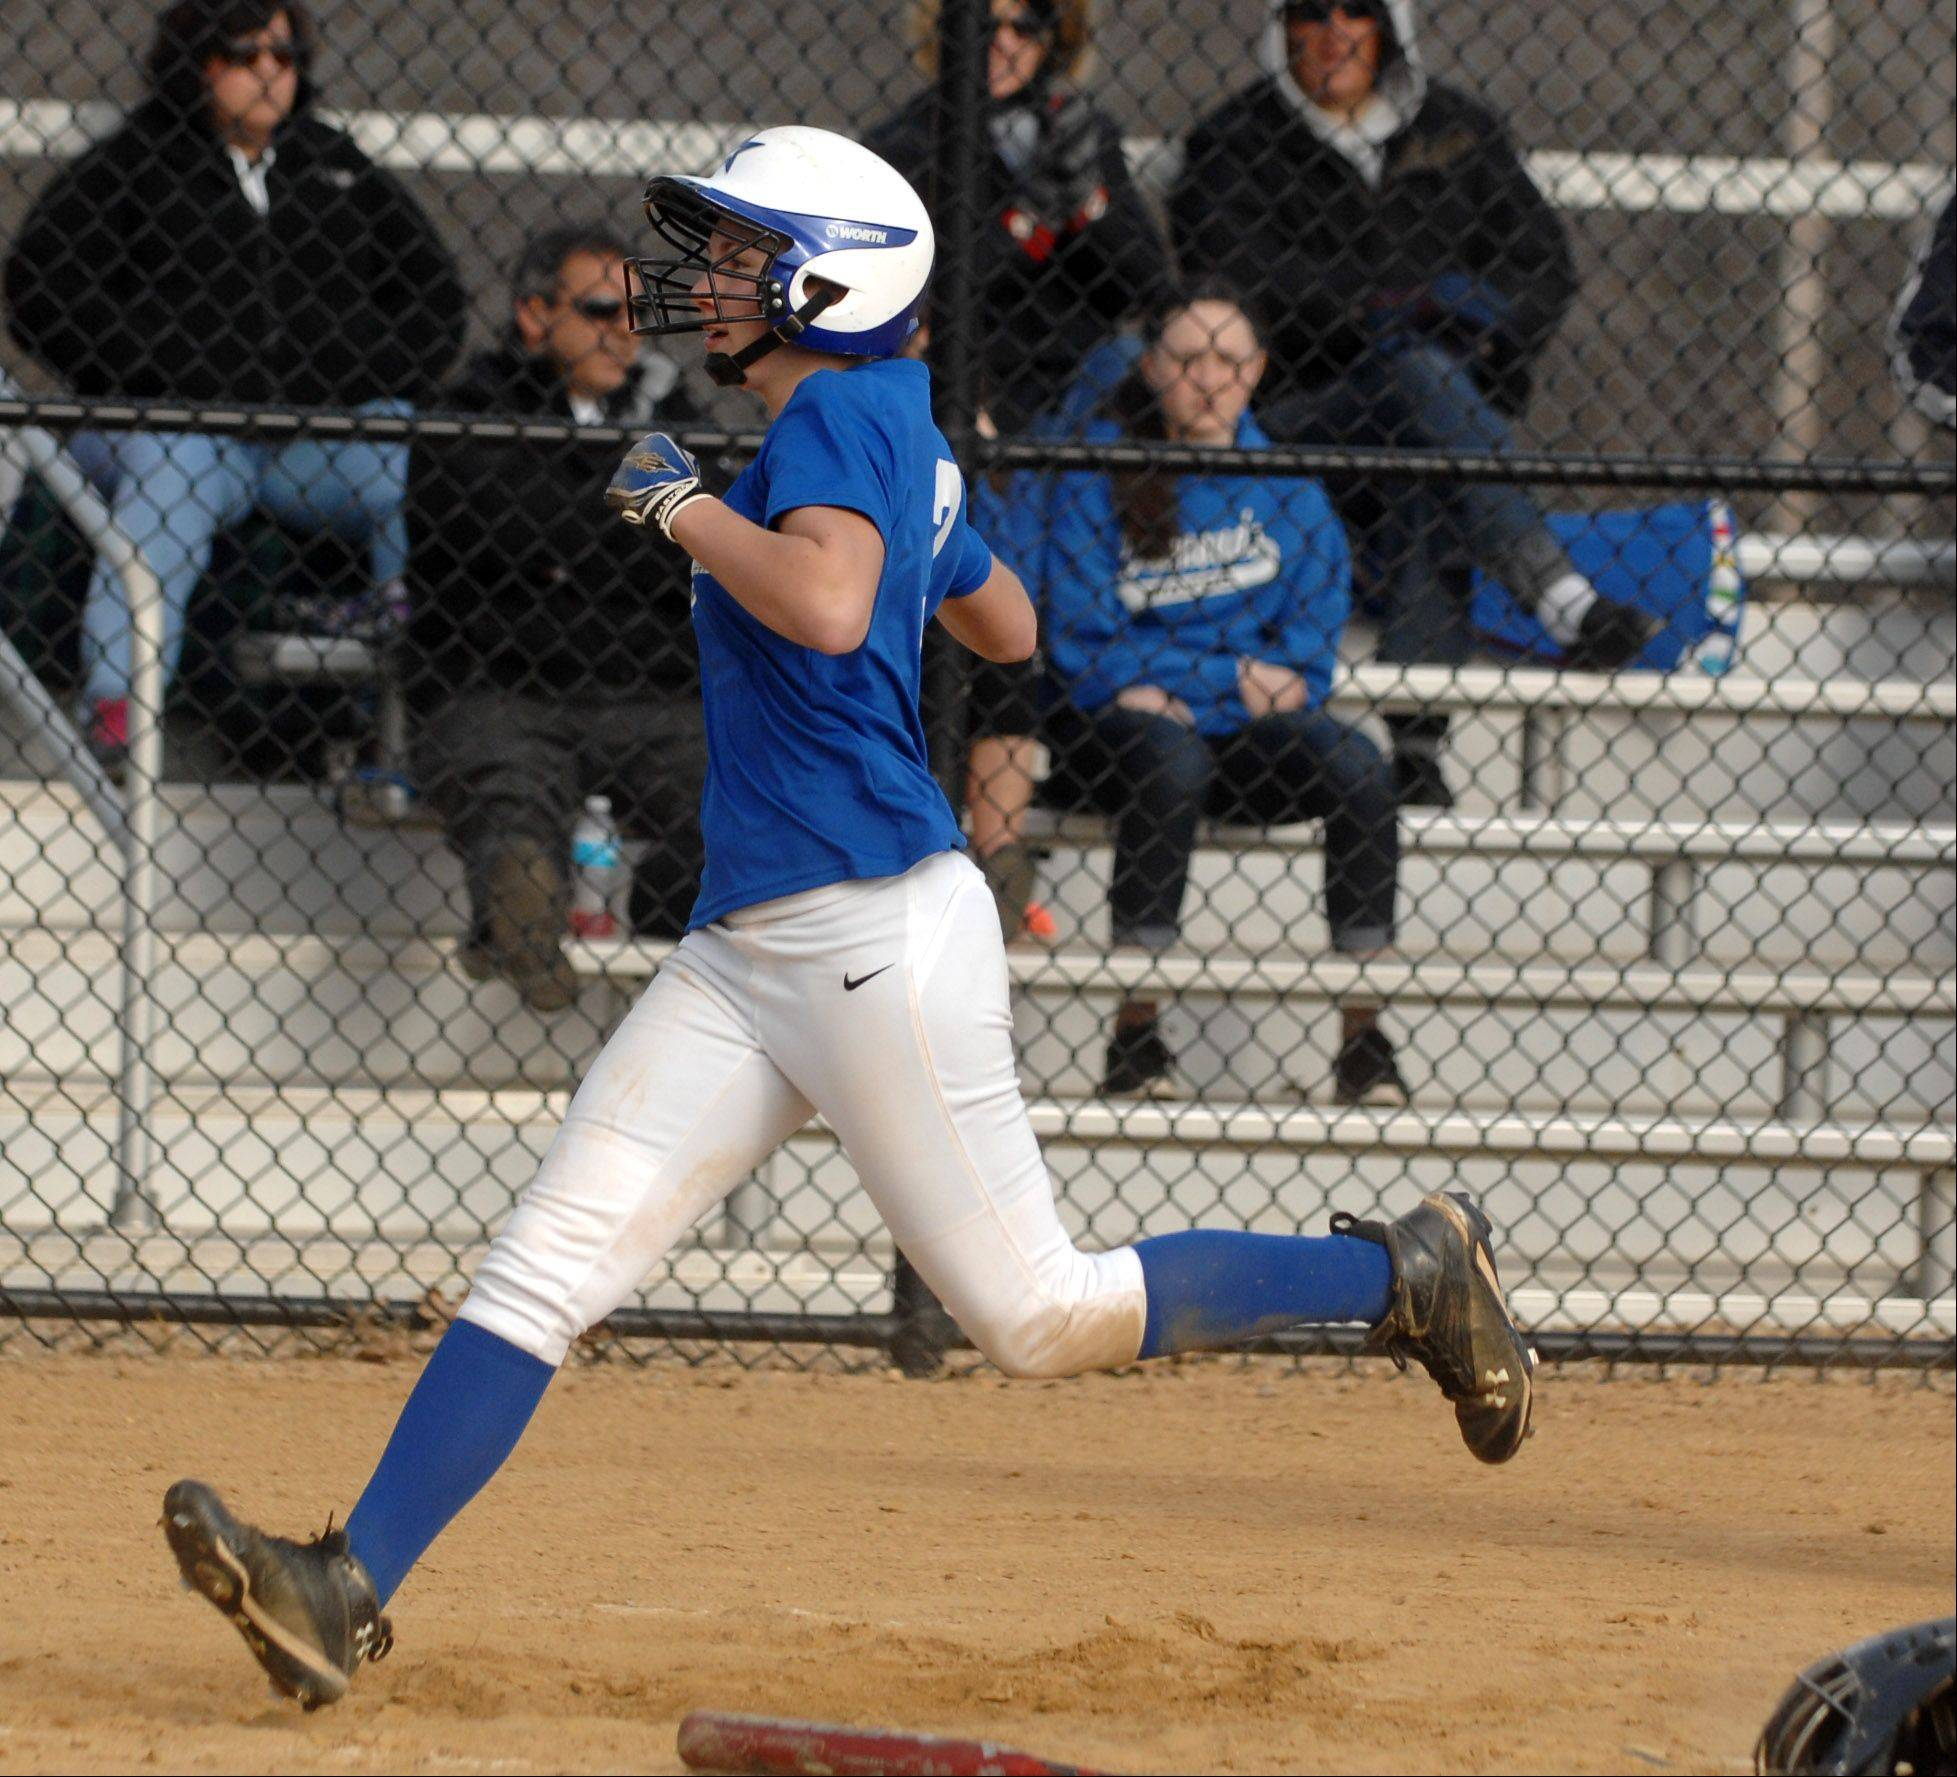 St. Charles North's Andrea Beal crosses the plate to score the team's only run against South Elgin during Friday's game in St. Charles.